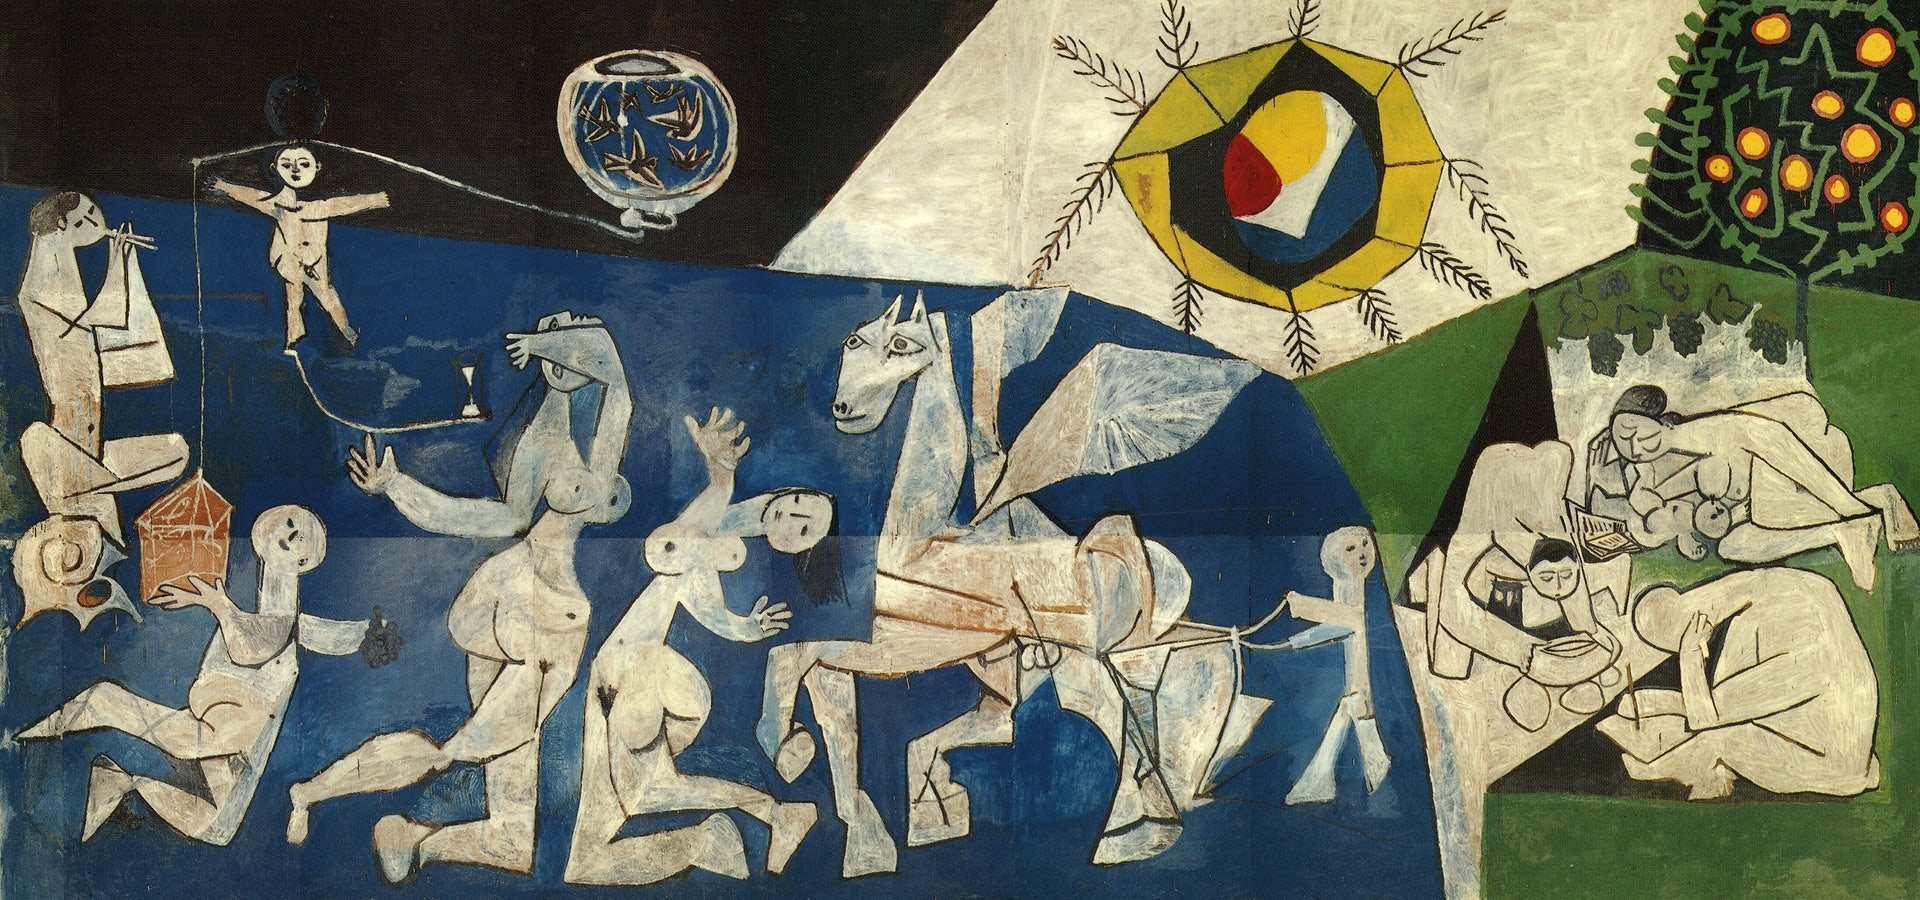 Artwork by Pablo Picasso called 'War'